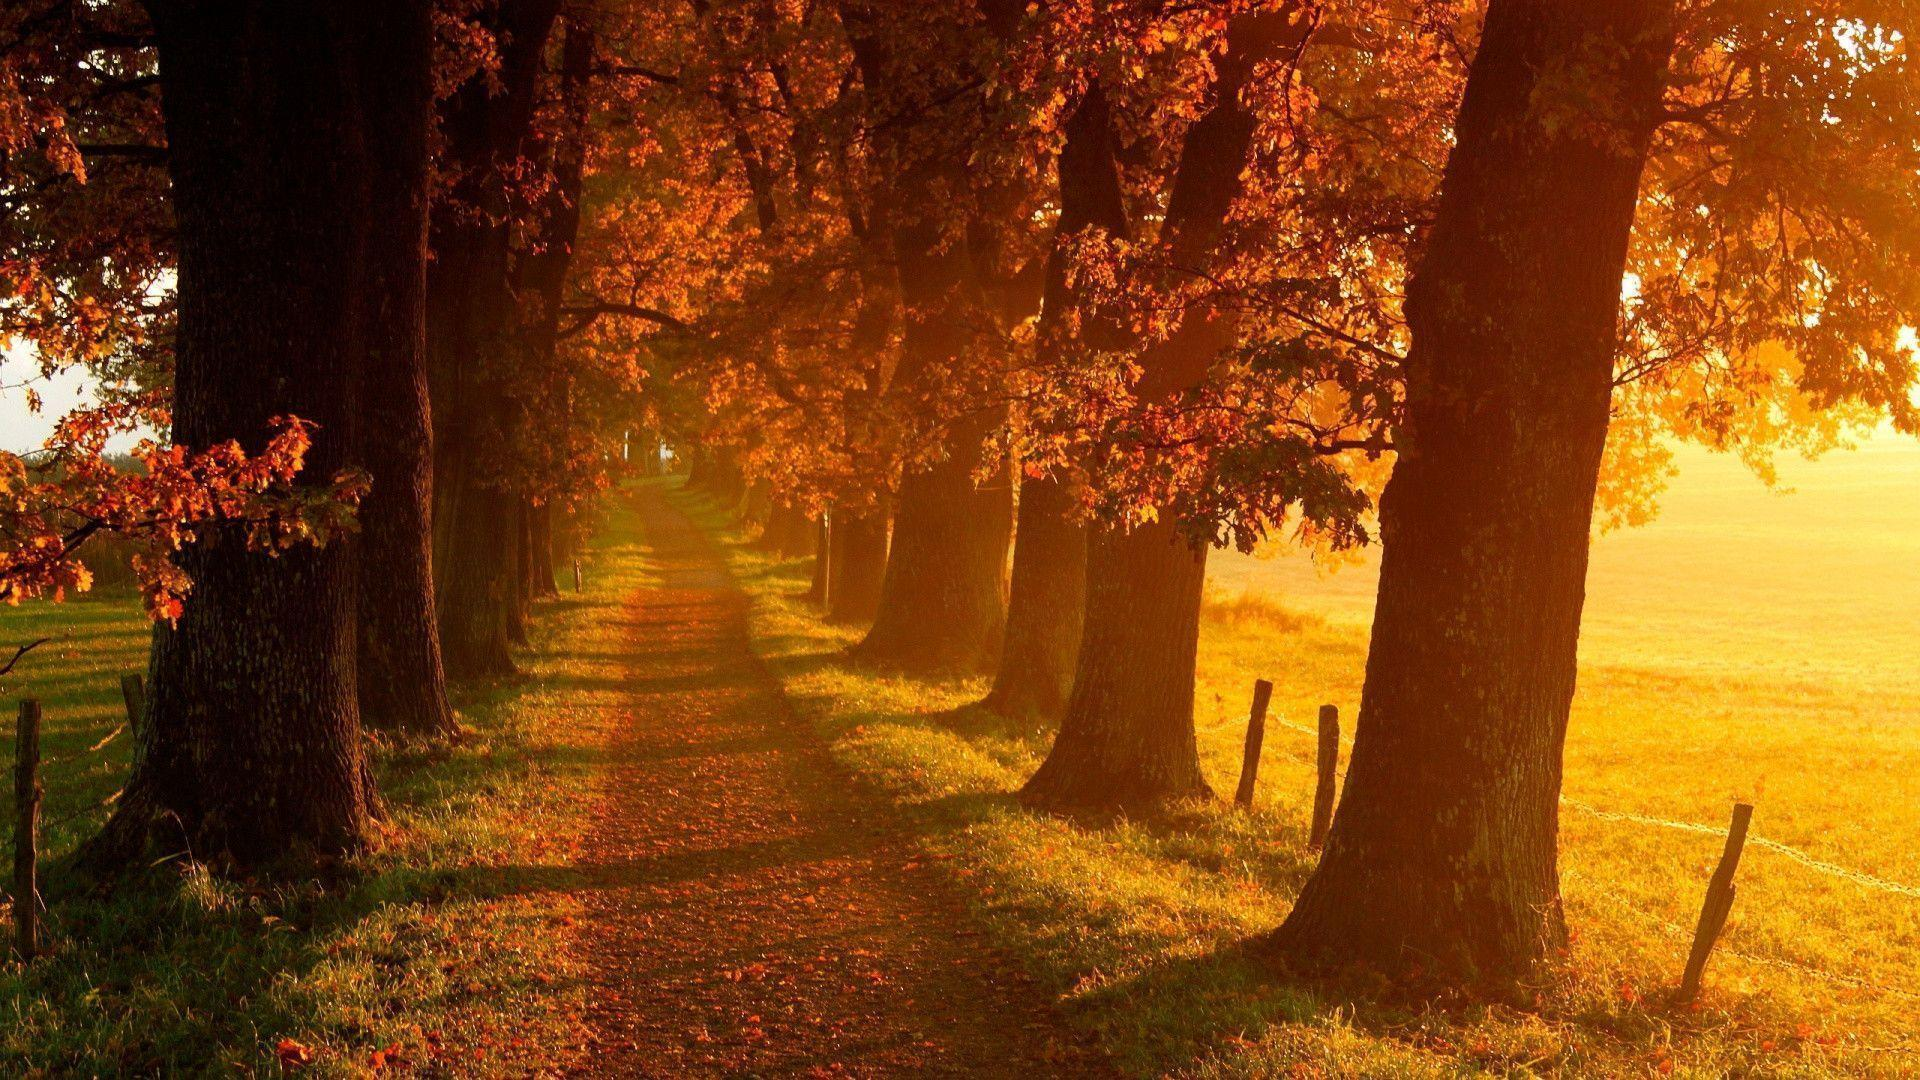 1920x1080 Autumn Landscape Scenery Wallpaper